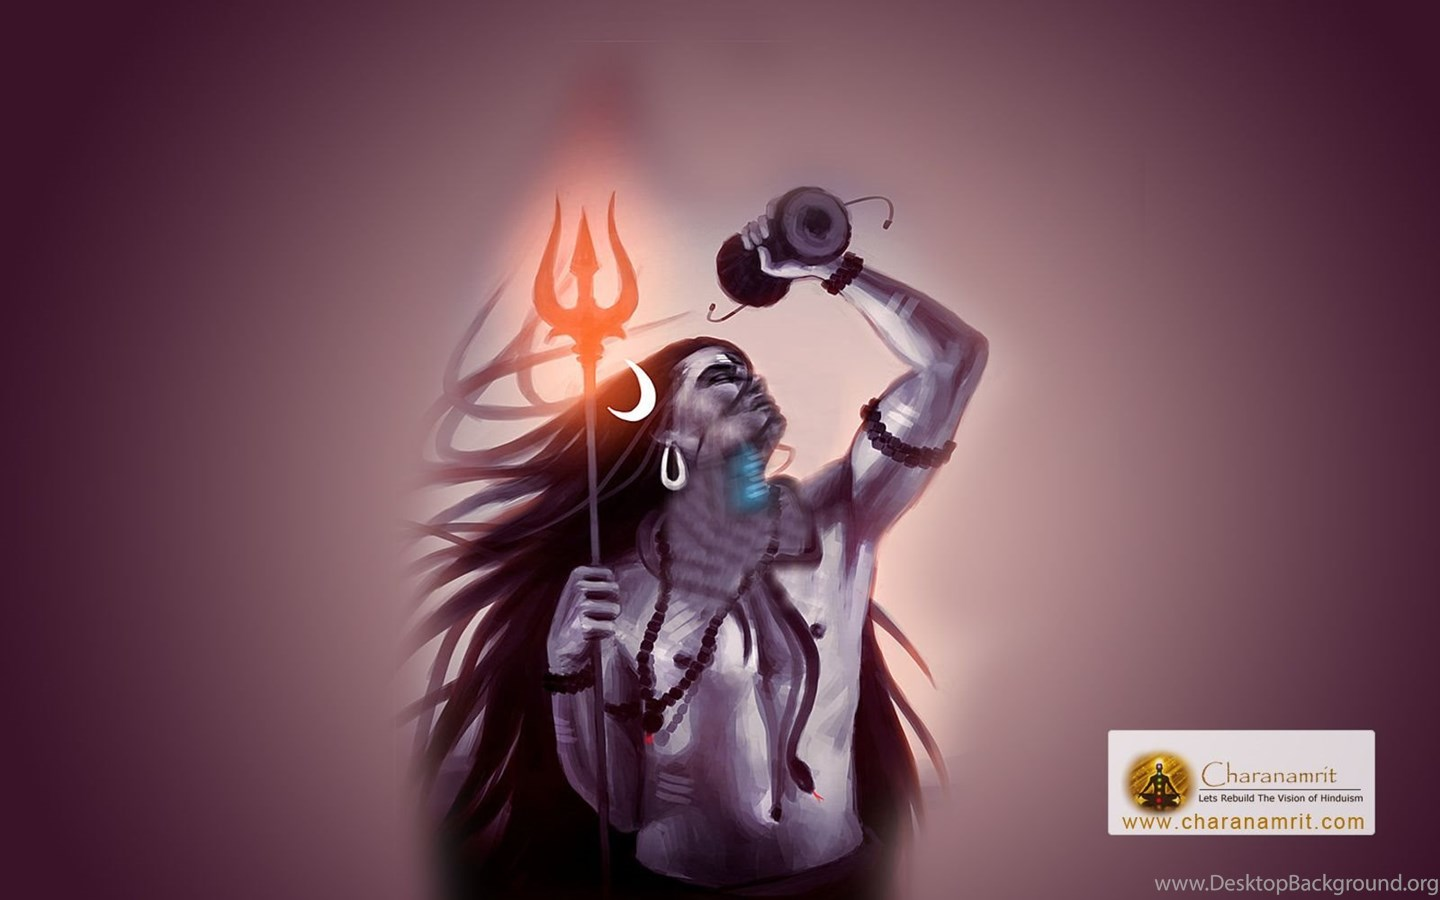 1366x768 Lord Shiva Desktop Background: Lord Shiva Attractive Hd Wallpapers For Free Download